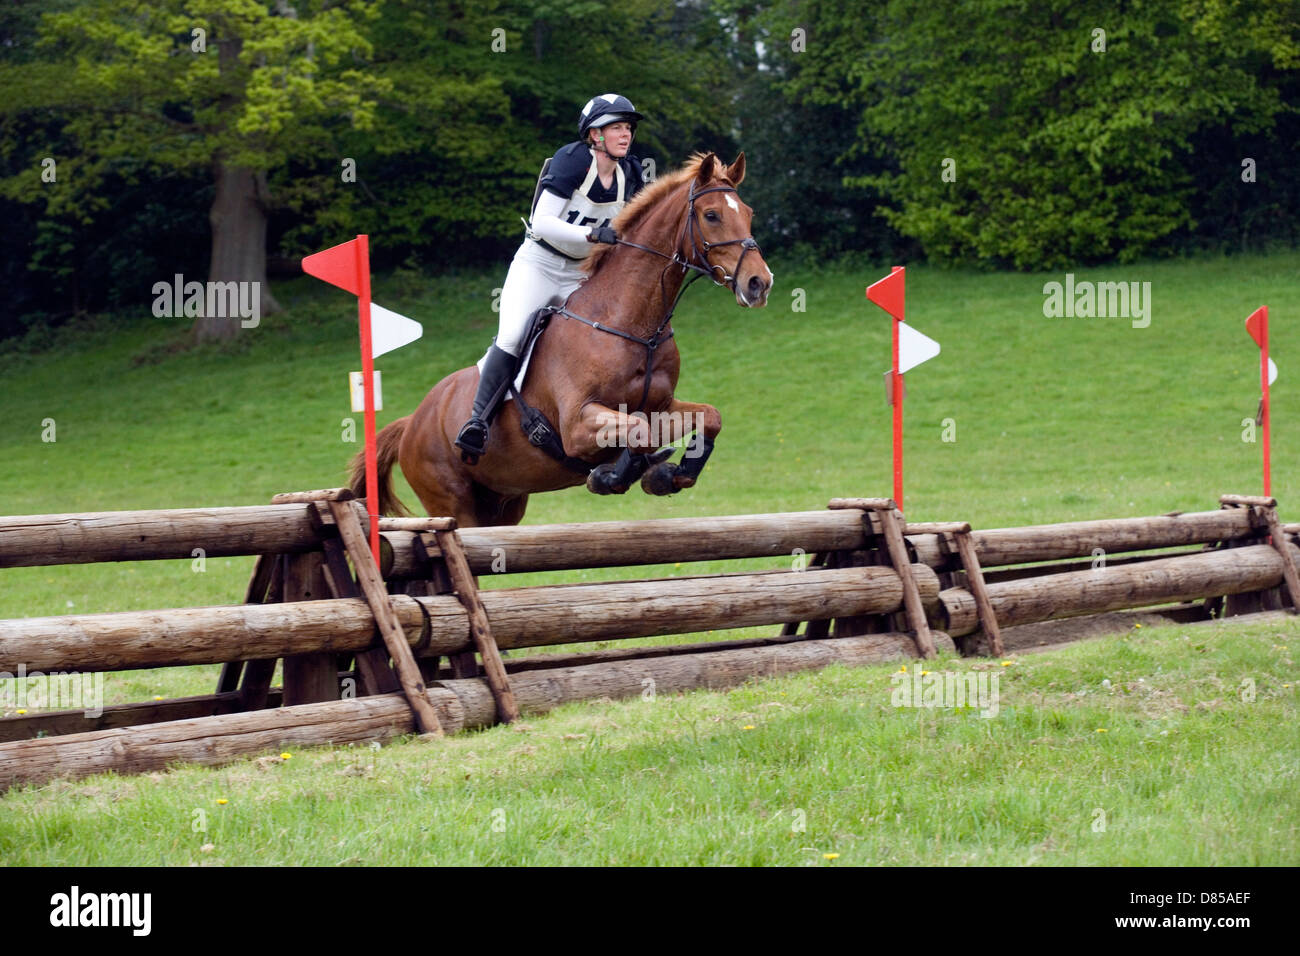 Horse Jumping Eventing Cross Country Stock Photos Amp Horse